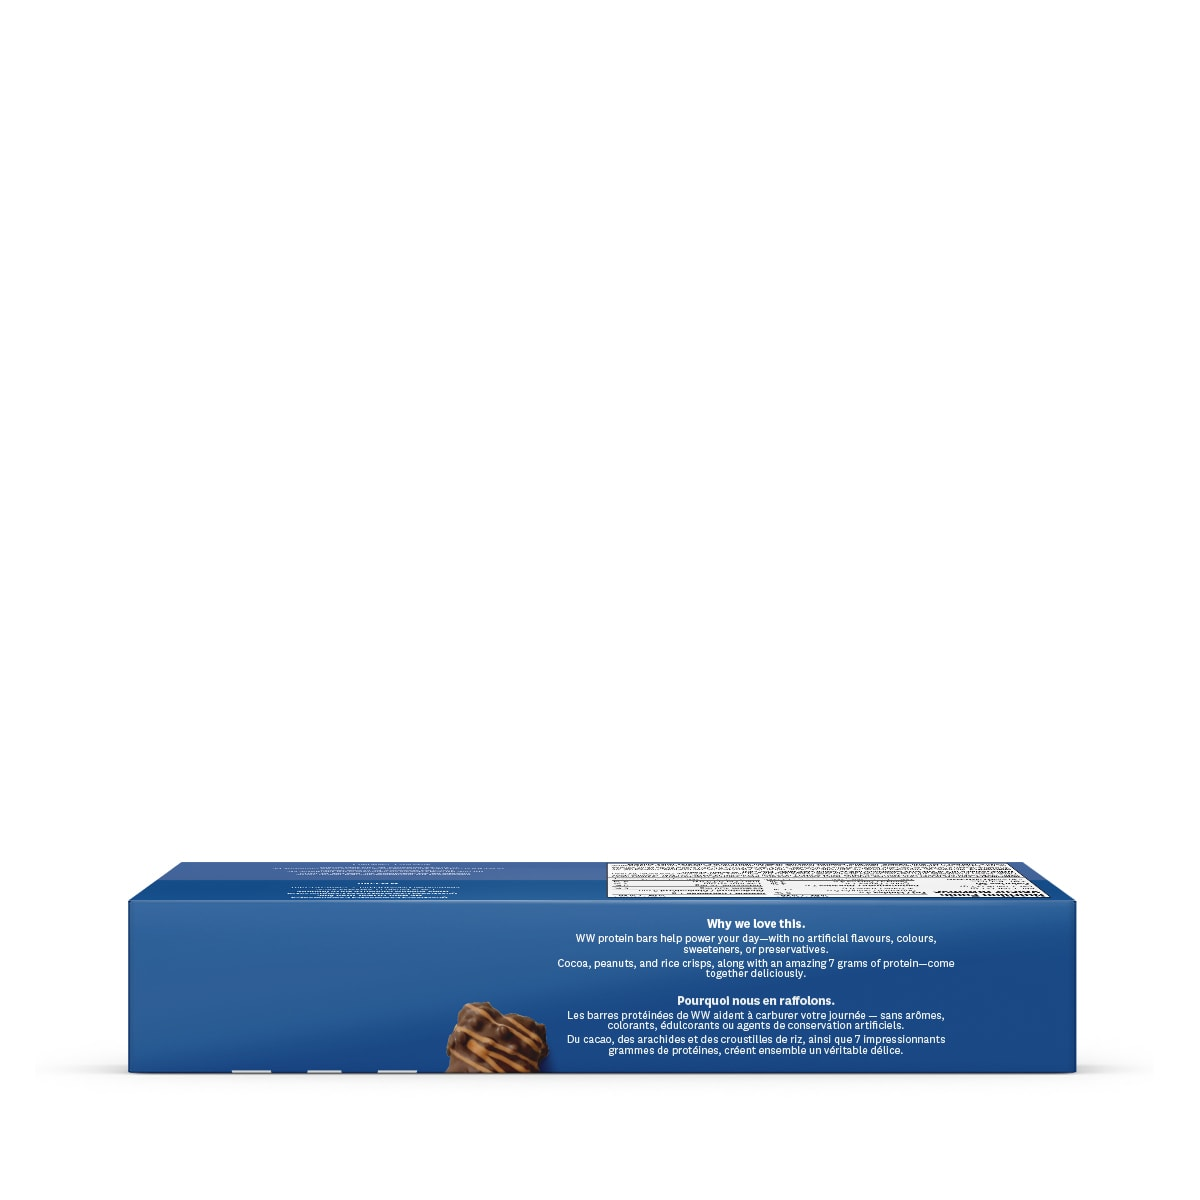 Chocolate Peanut Butter Baked Protein Bar (3 Pack) - side of box 2